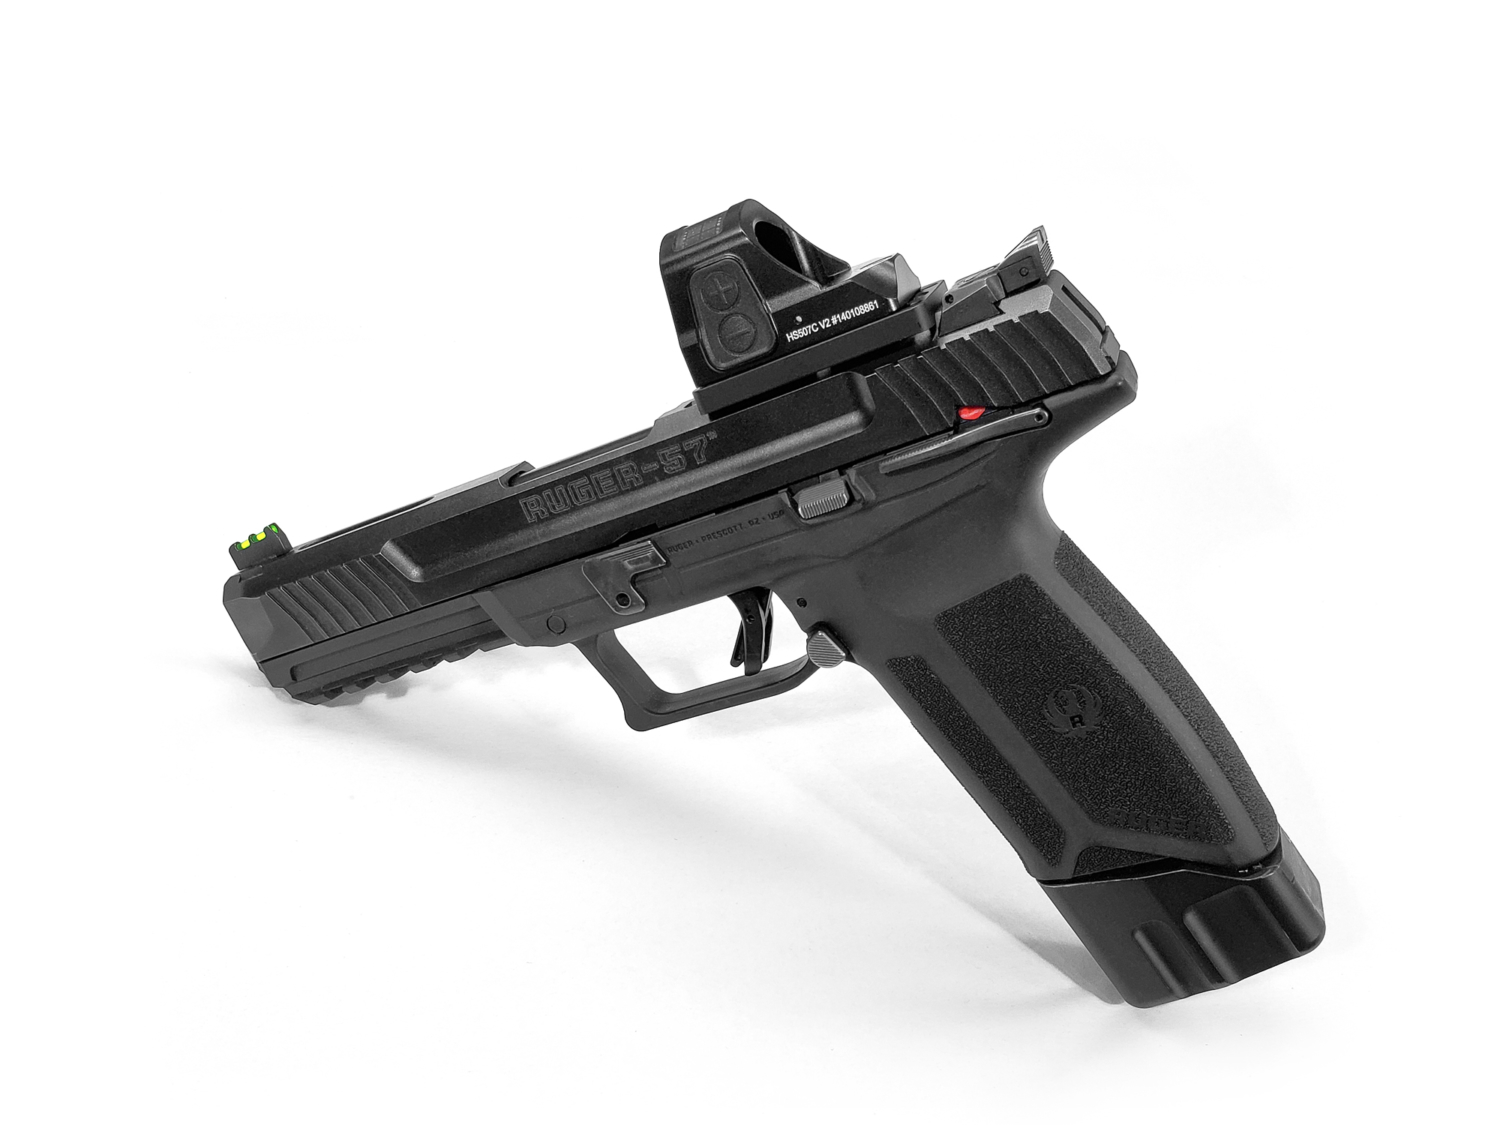 RUGER 57 + 5 OPTICS PACKAGE FROM F5 MFG (MANUFACTURING)